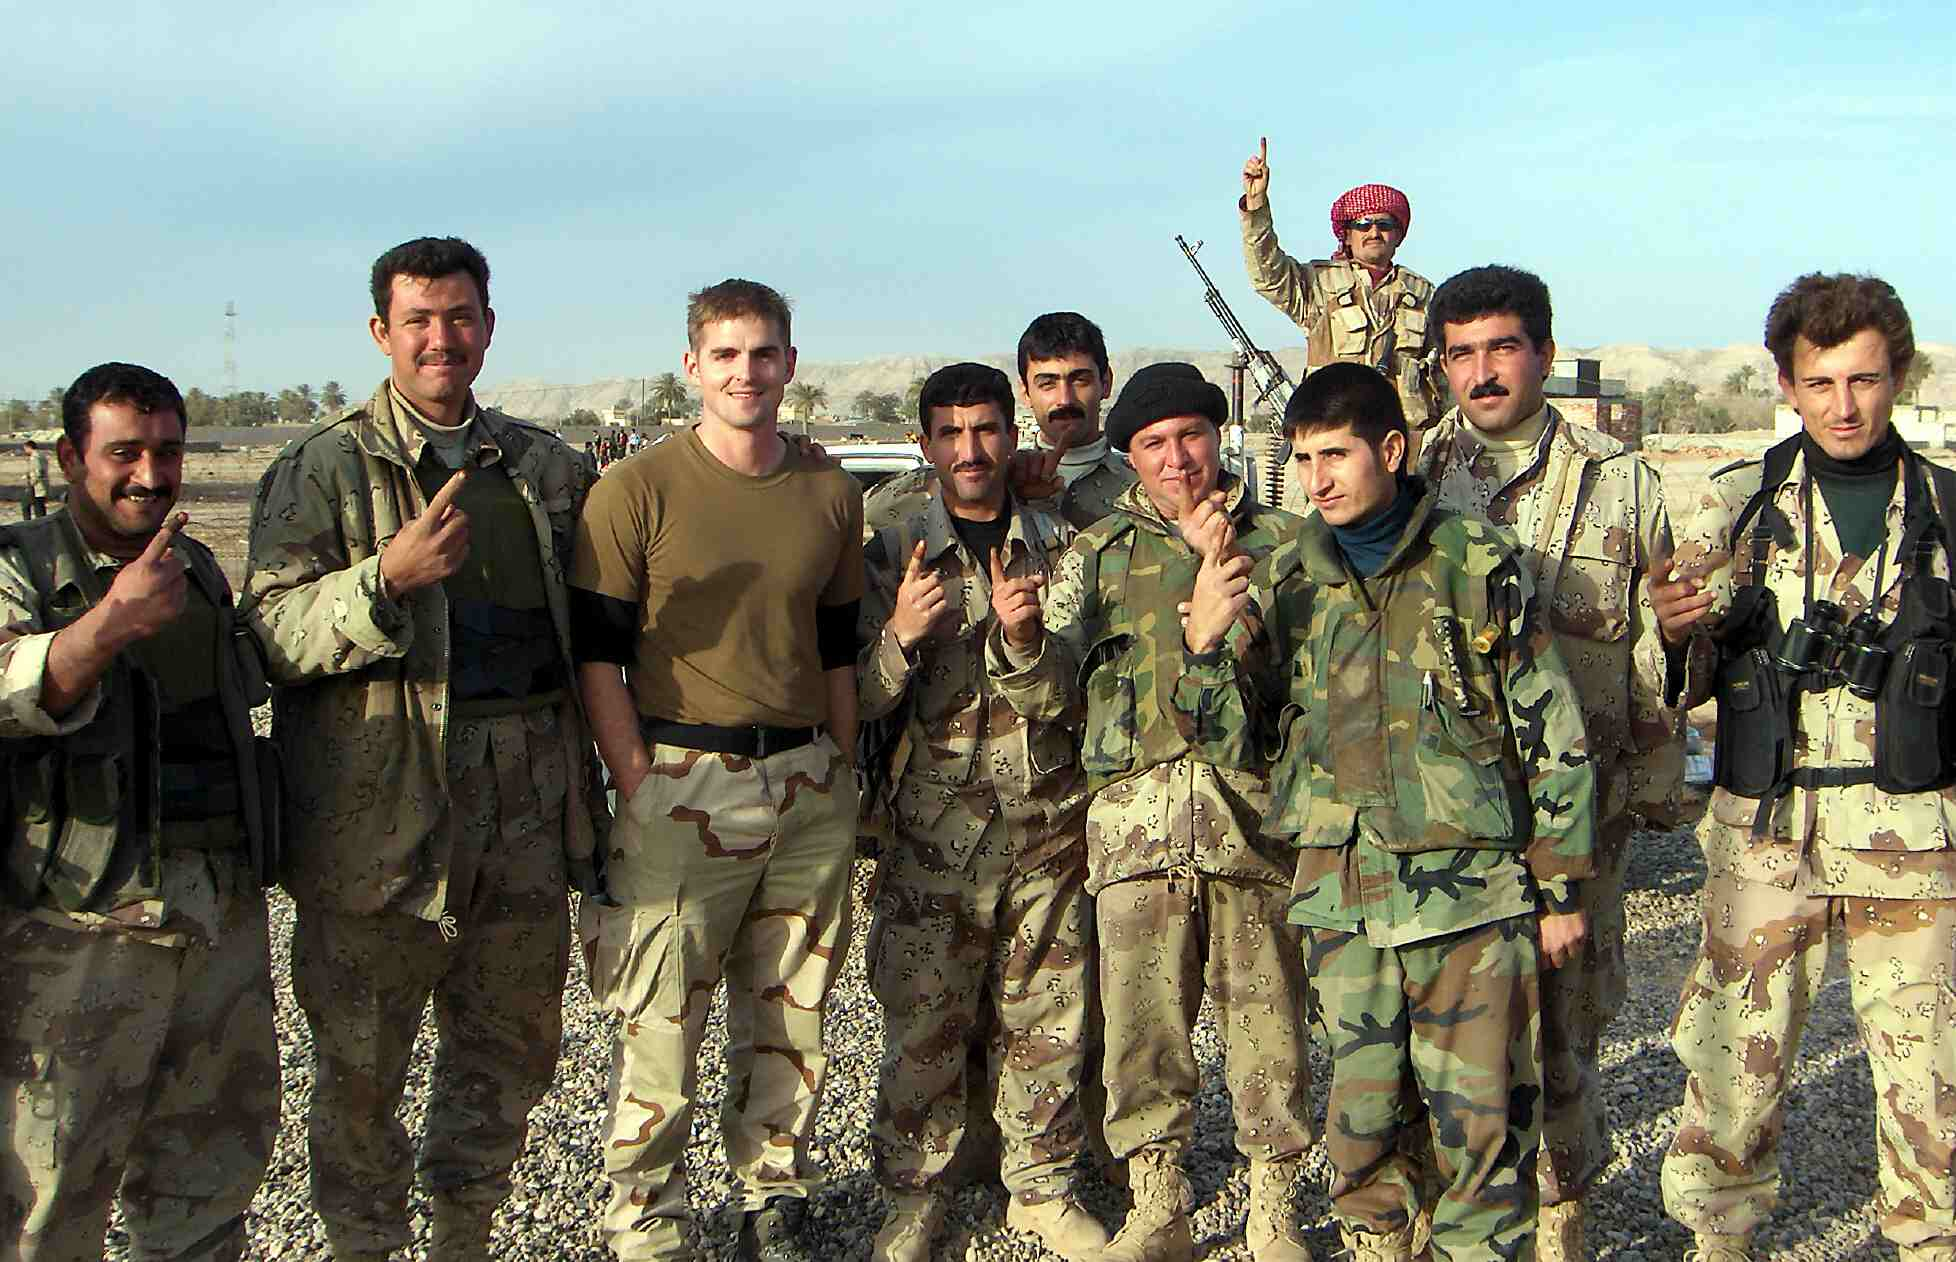 Tommy Sowers (second from left) in Iraq. Photo credit: Panosian32 via Wikimedia Commons.